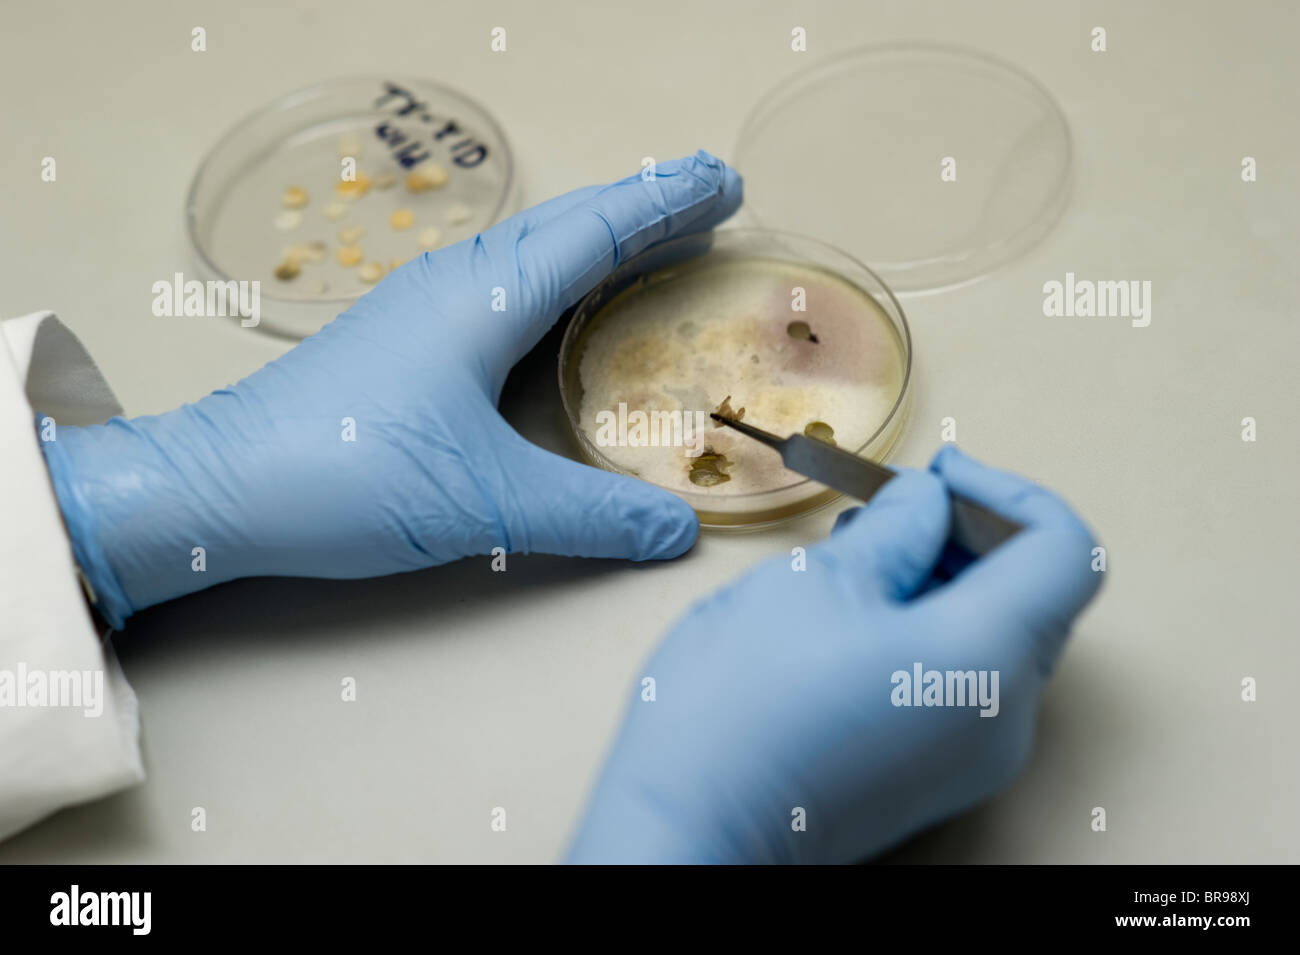 Fungus cultures in Plant Pathology lab - Stock Image